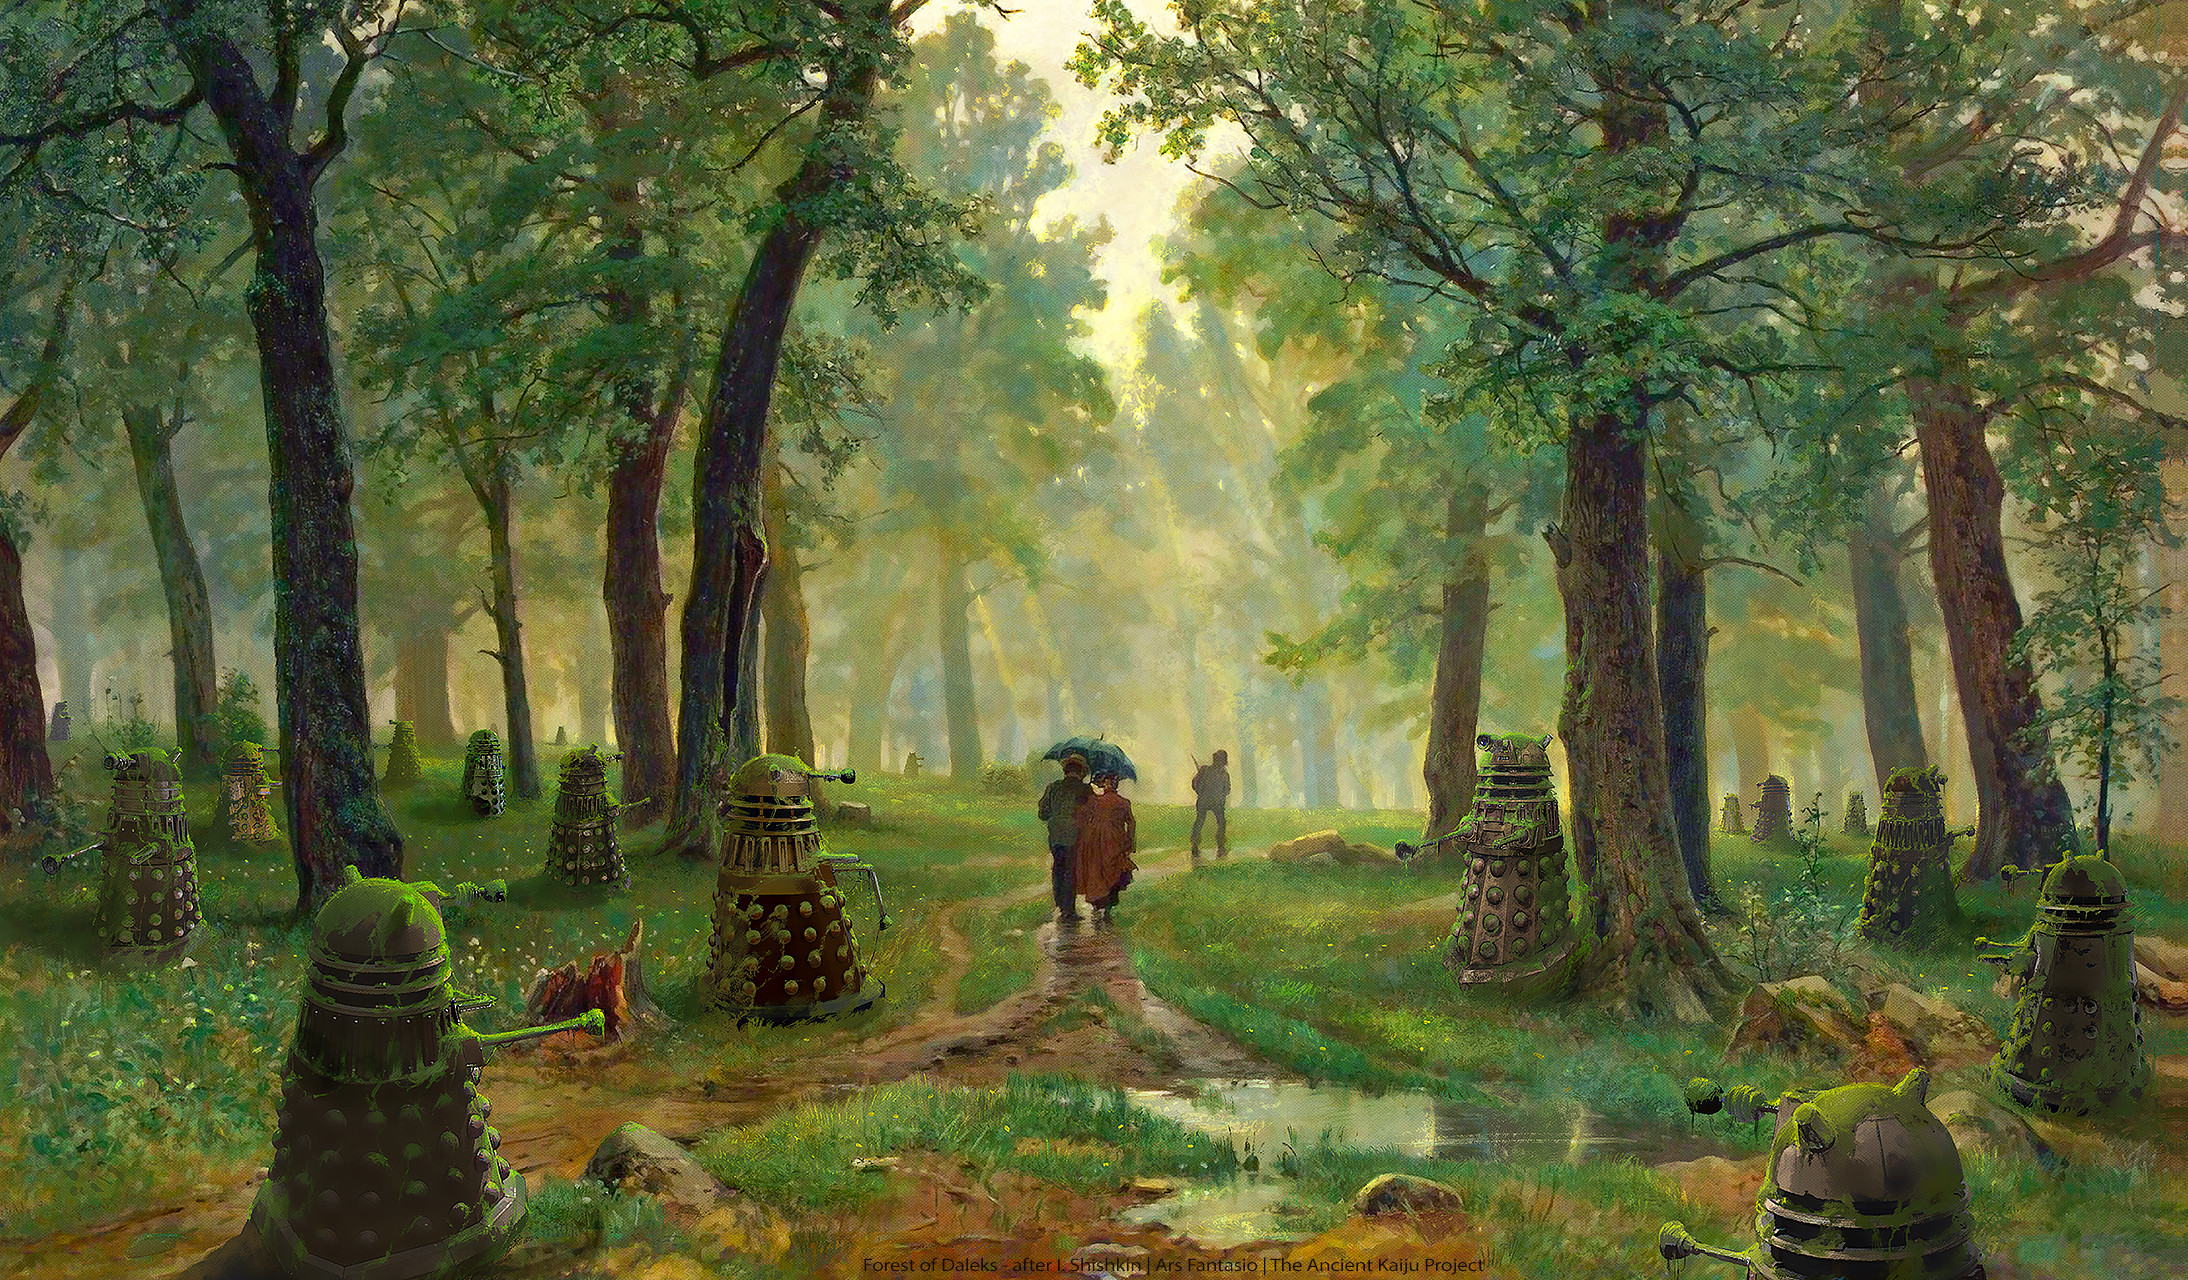 Forest of Daleks